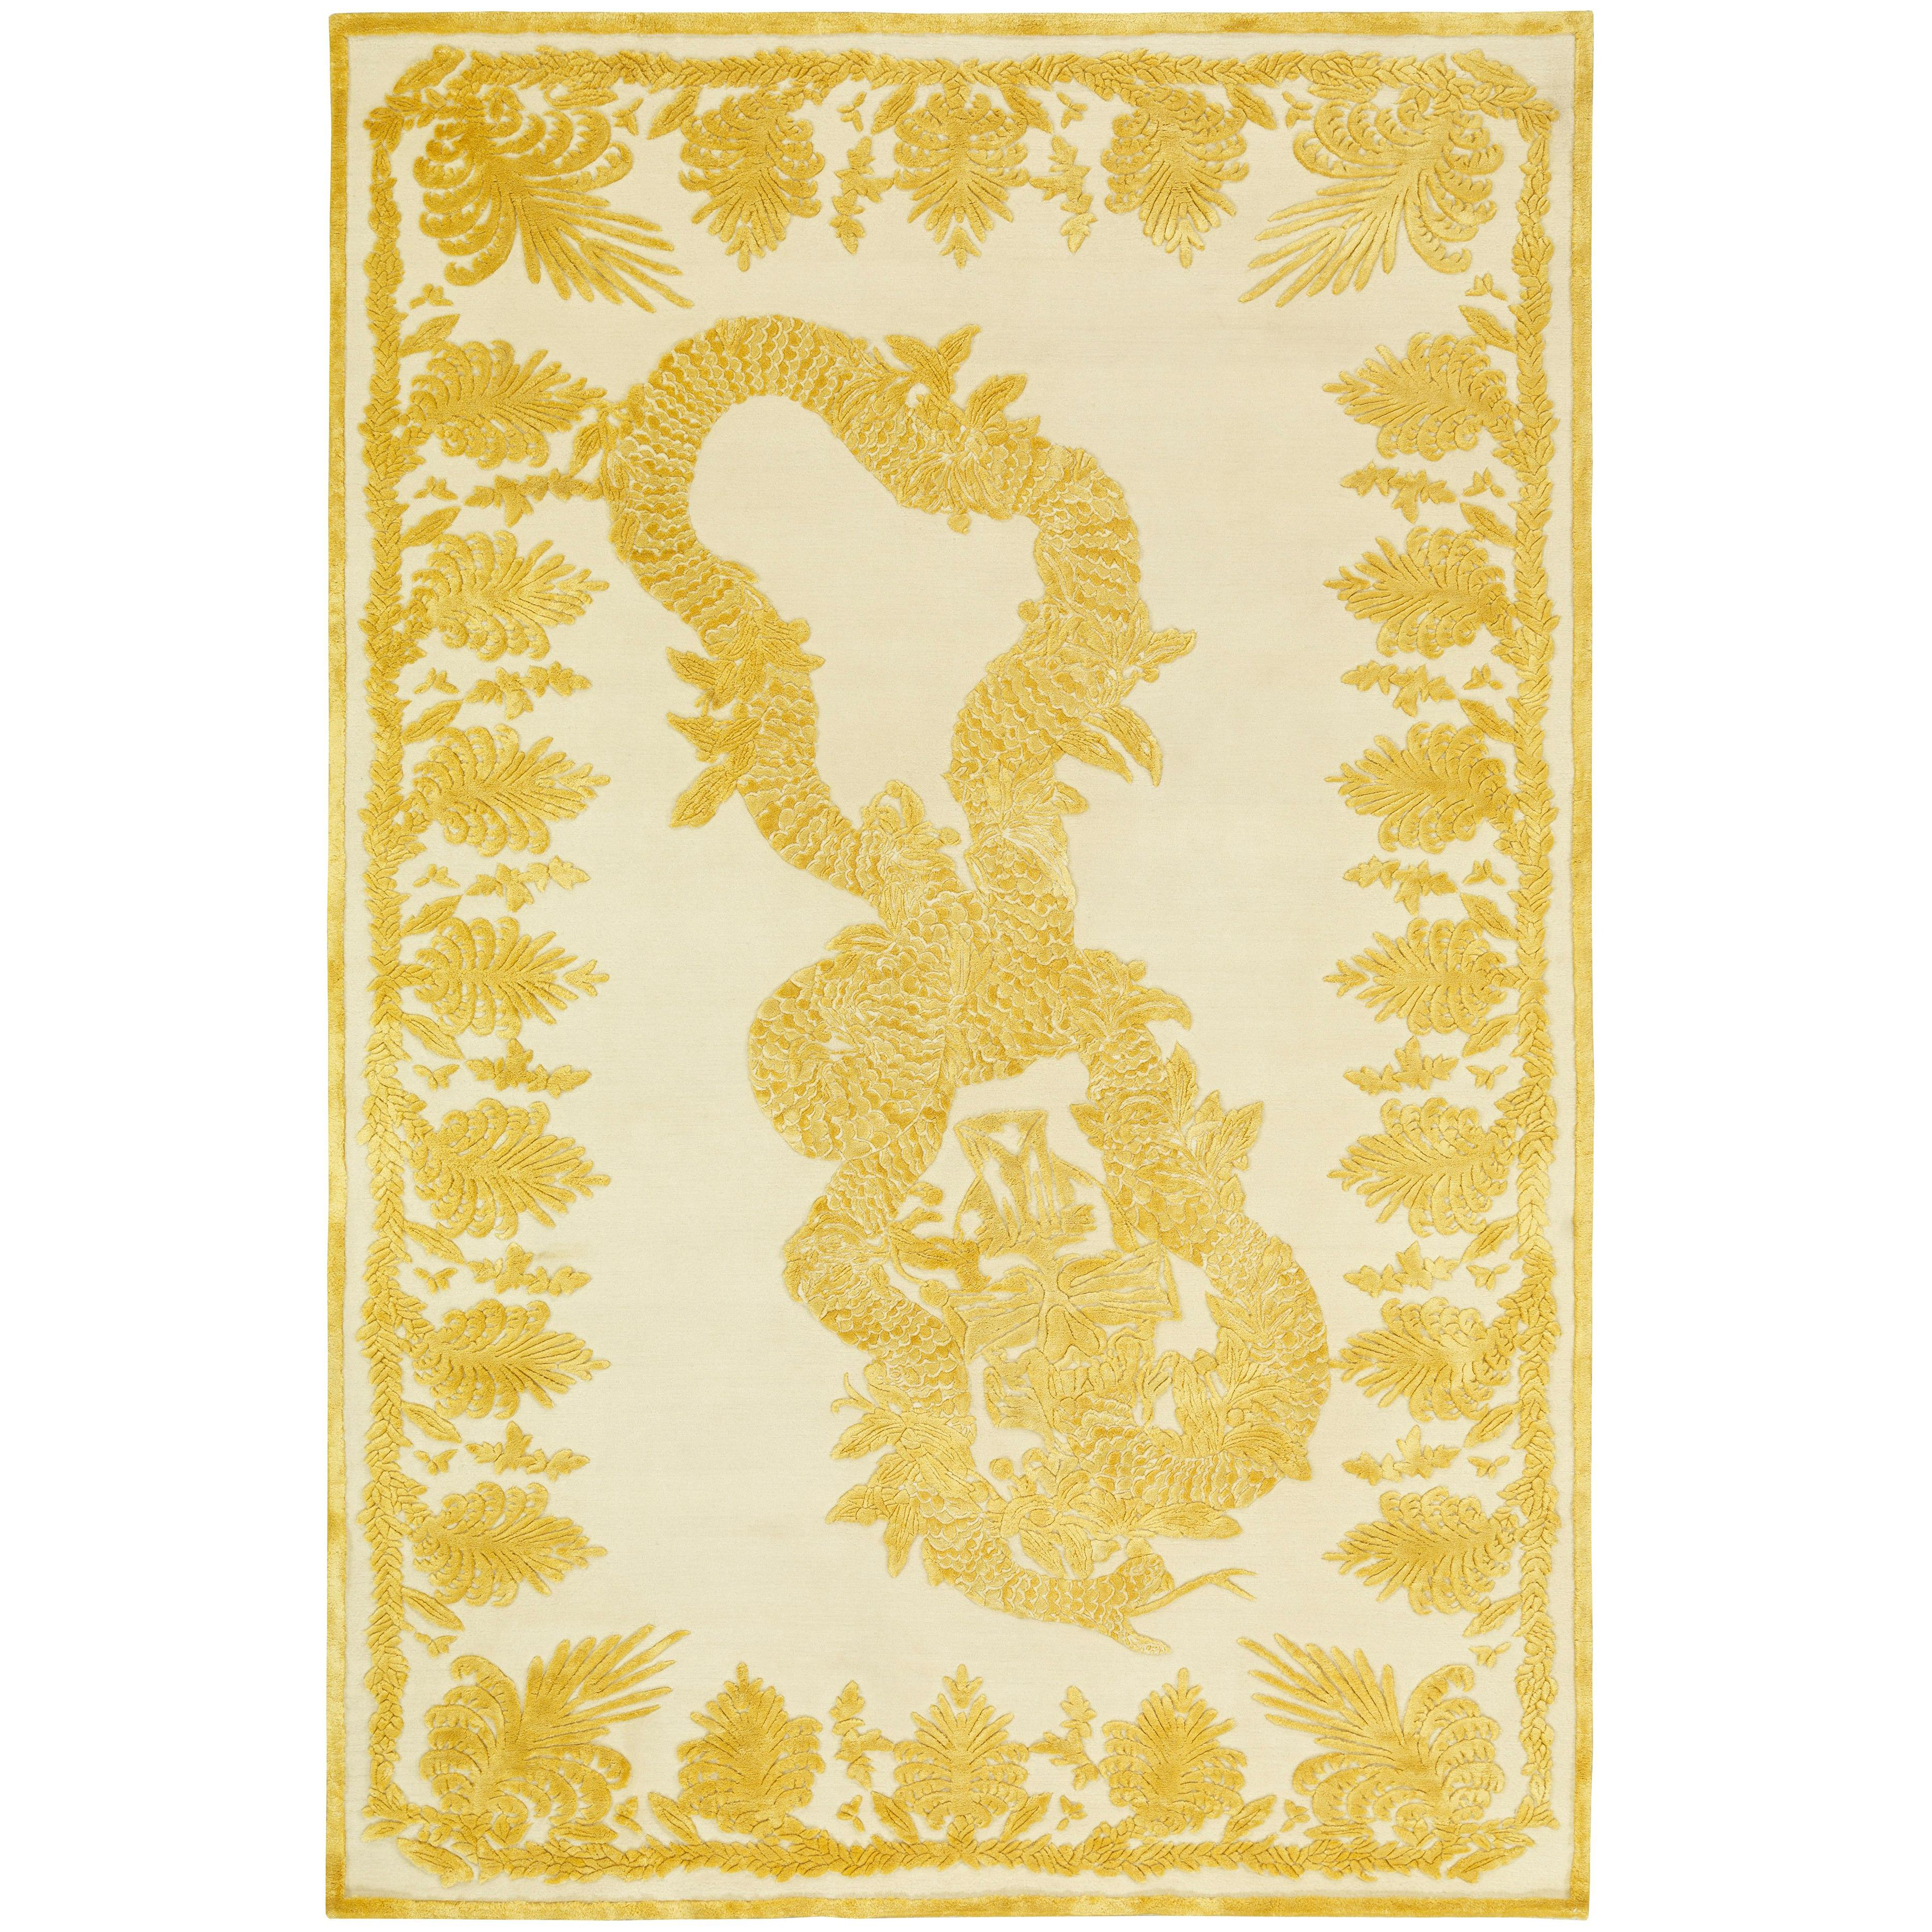 Military Brocade Ivory Hand-Knotted 10x8 Rug in Wool & Silk by Alexander McQueen